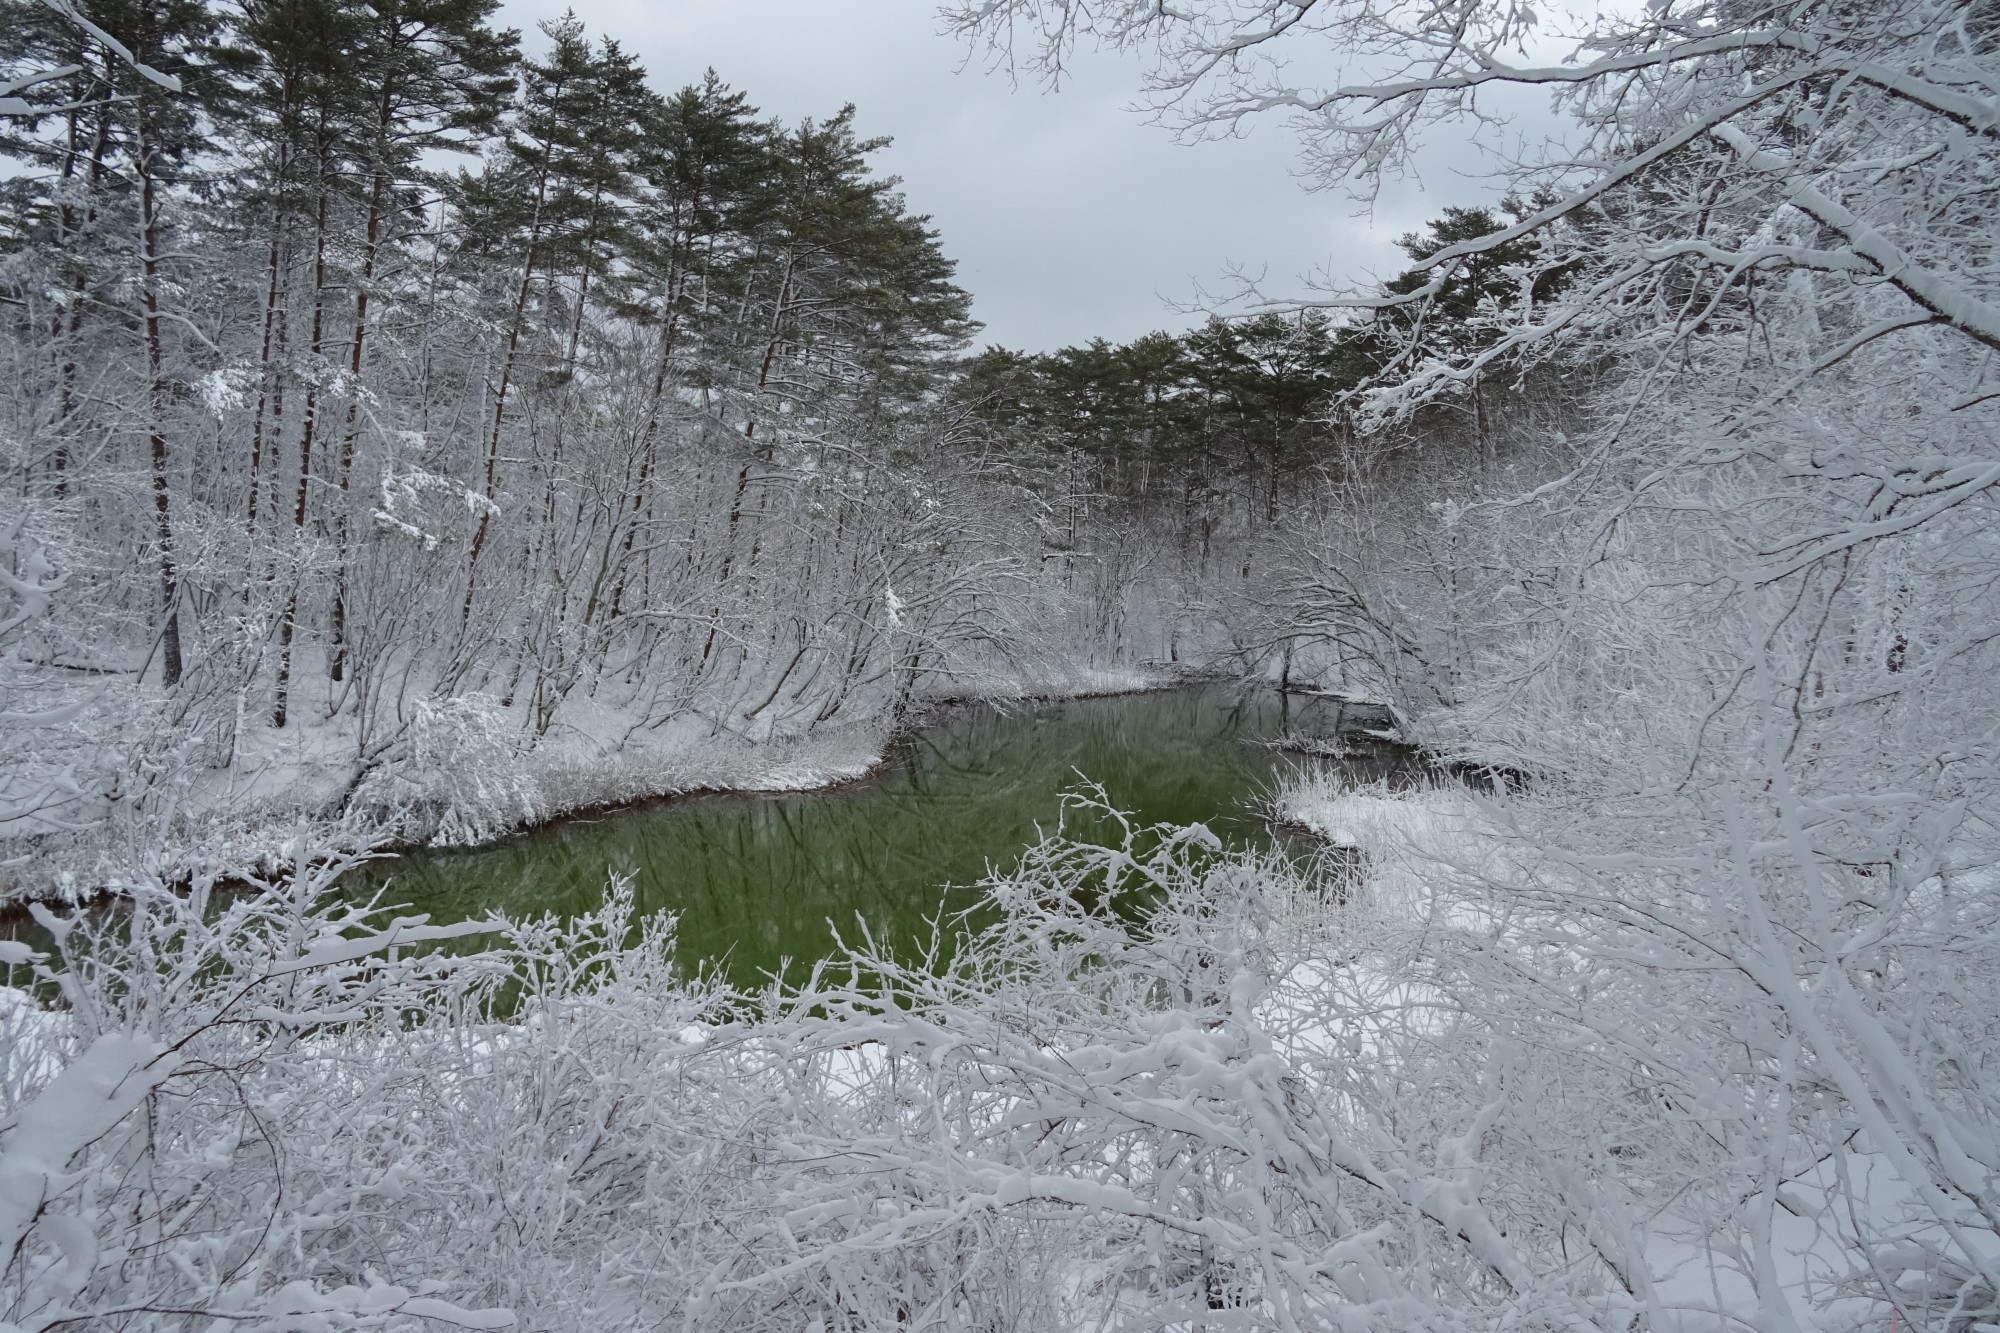 Five Colored Ponds Trail: Akanuma Pond (green pond with snow-covered branches surrounding it